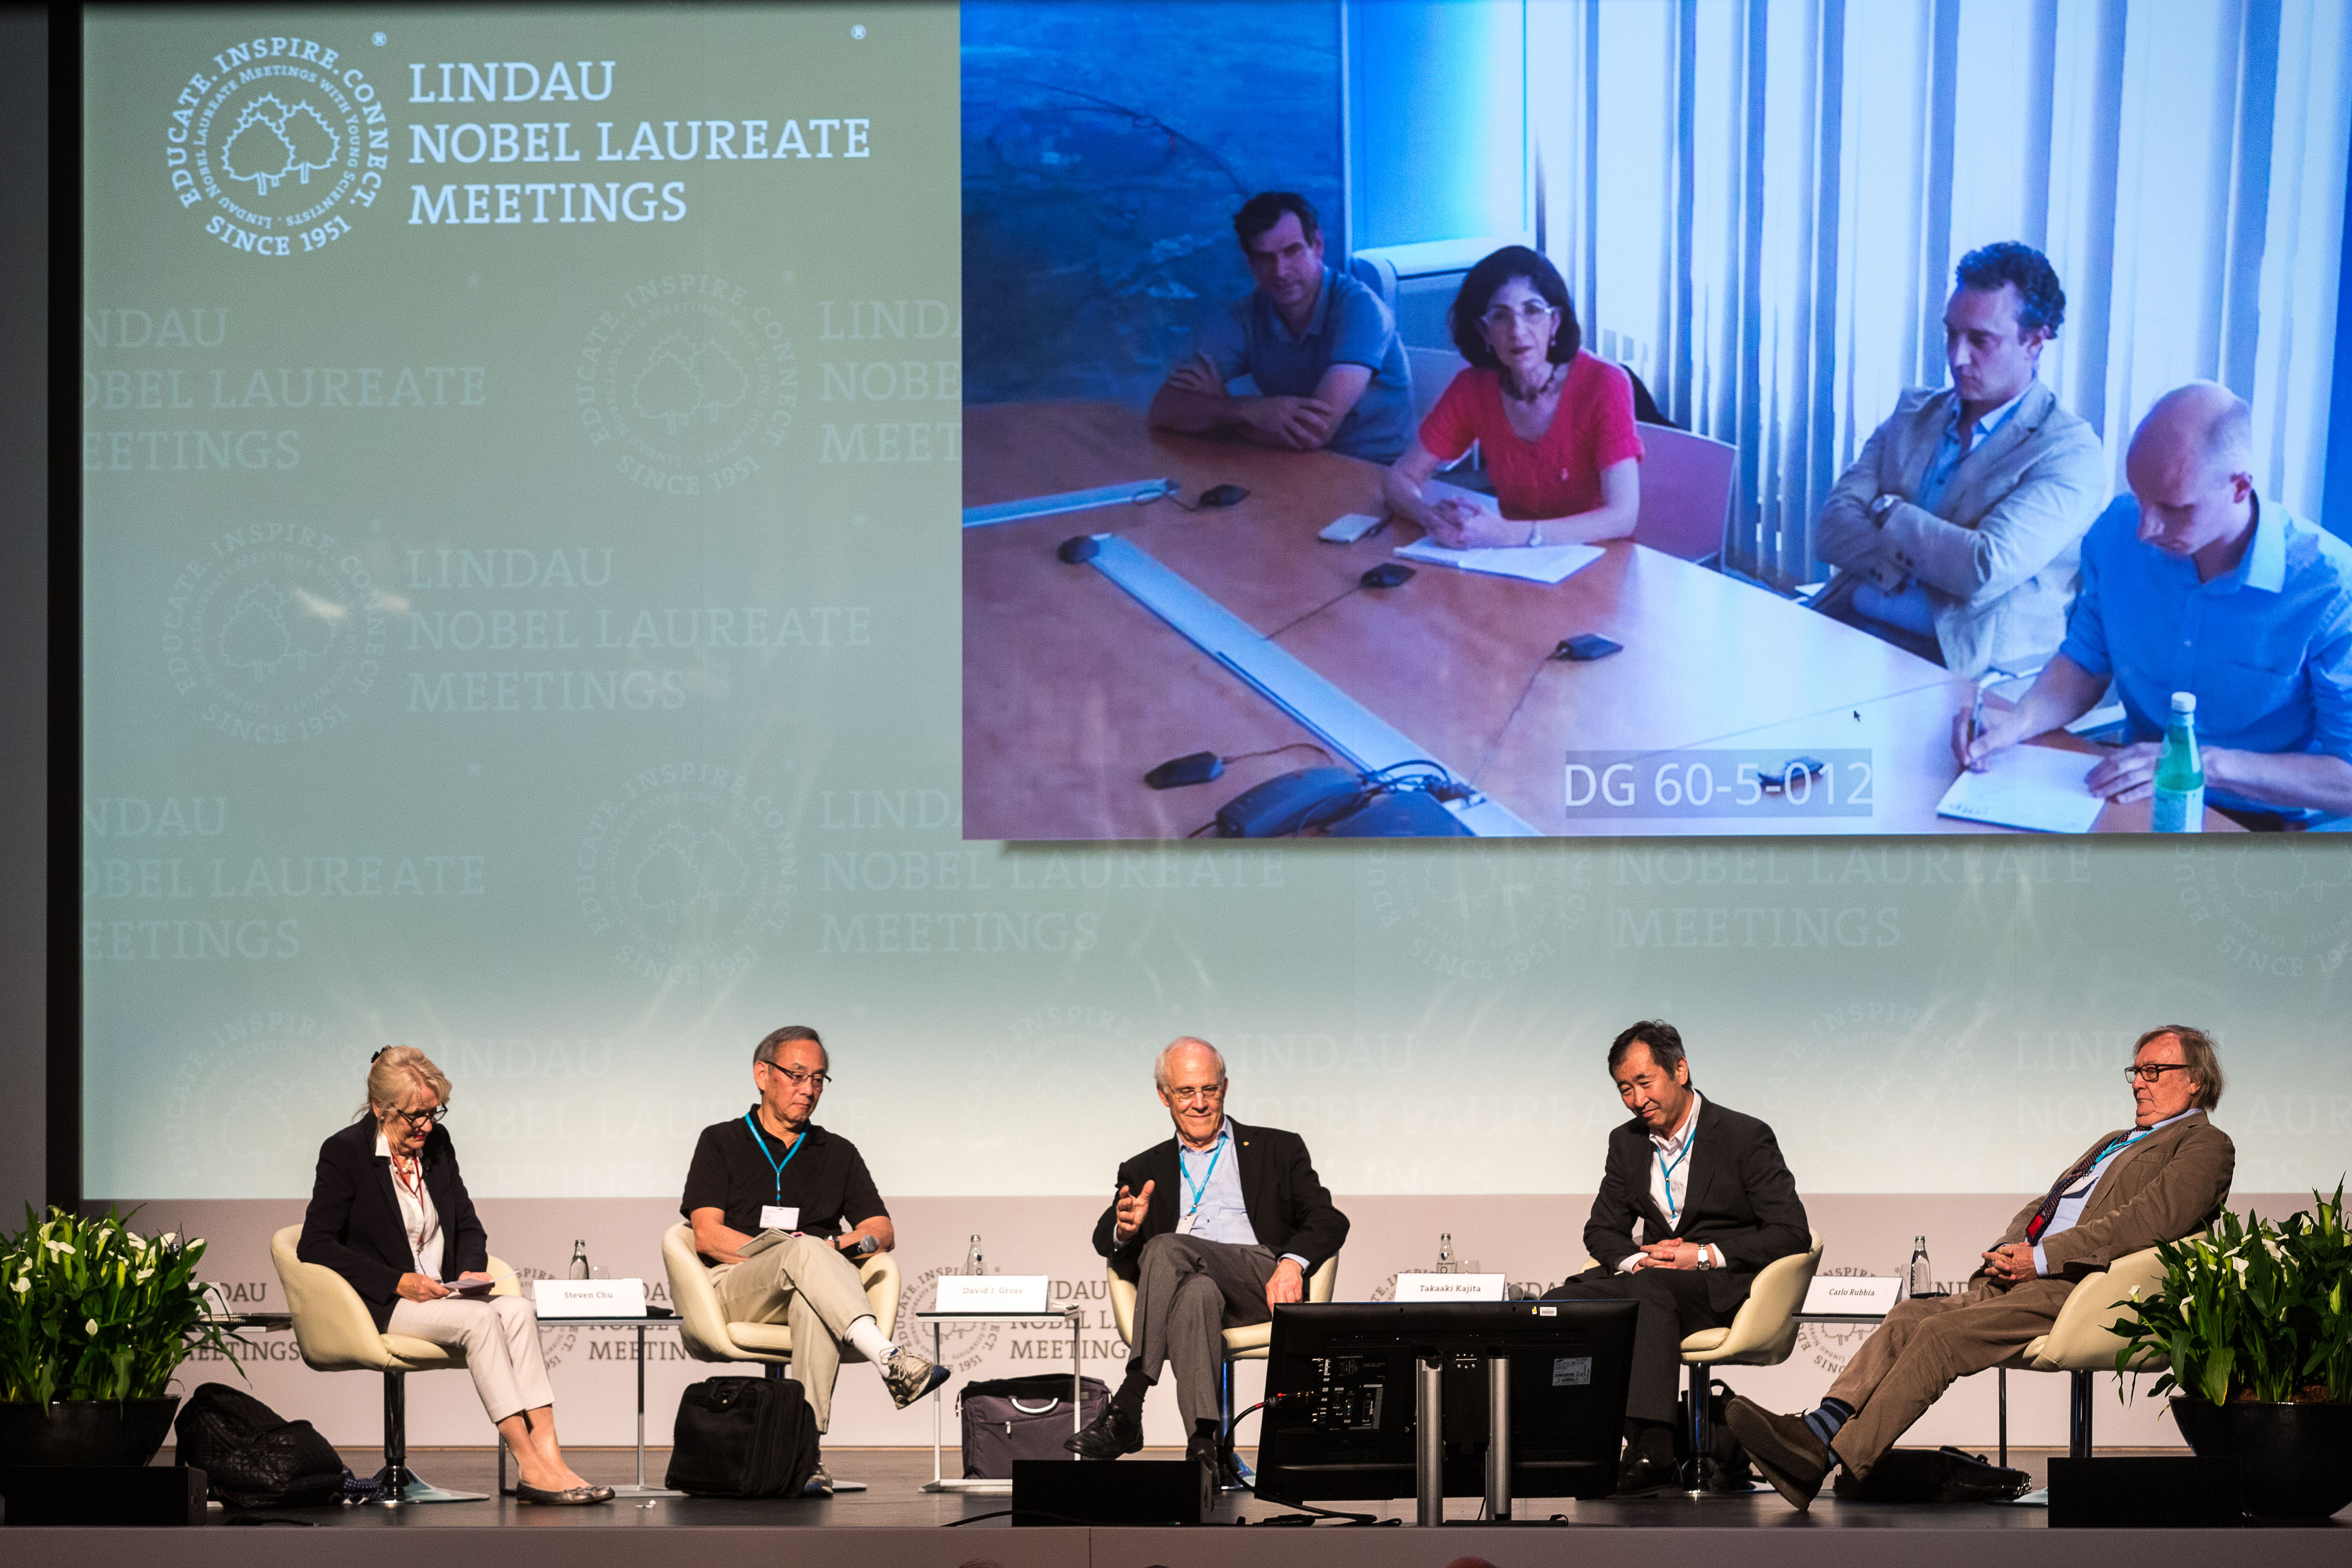 Nobel Laureates Chu, Gross, Kajita and Rubbia gathered for a panel discussion on physics yeond the Standard Model. Photo: Ch. Flemming/Lindau Nobel Laureate Meeting